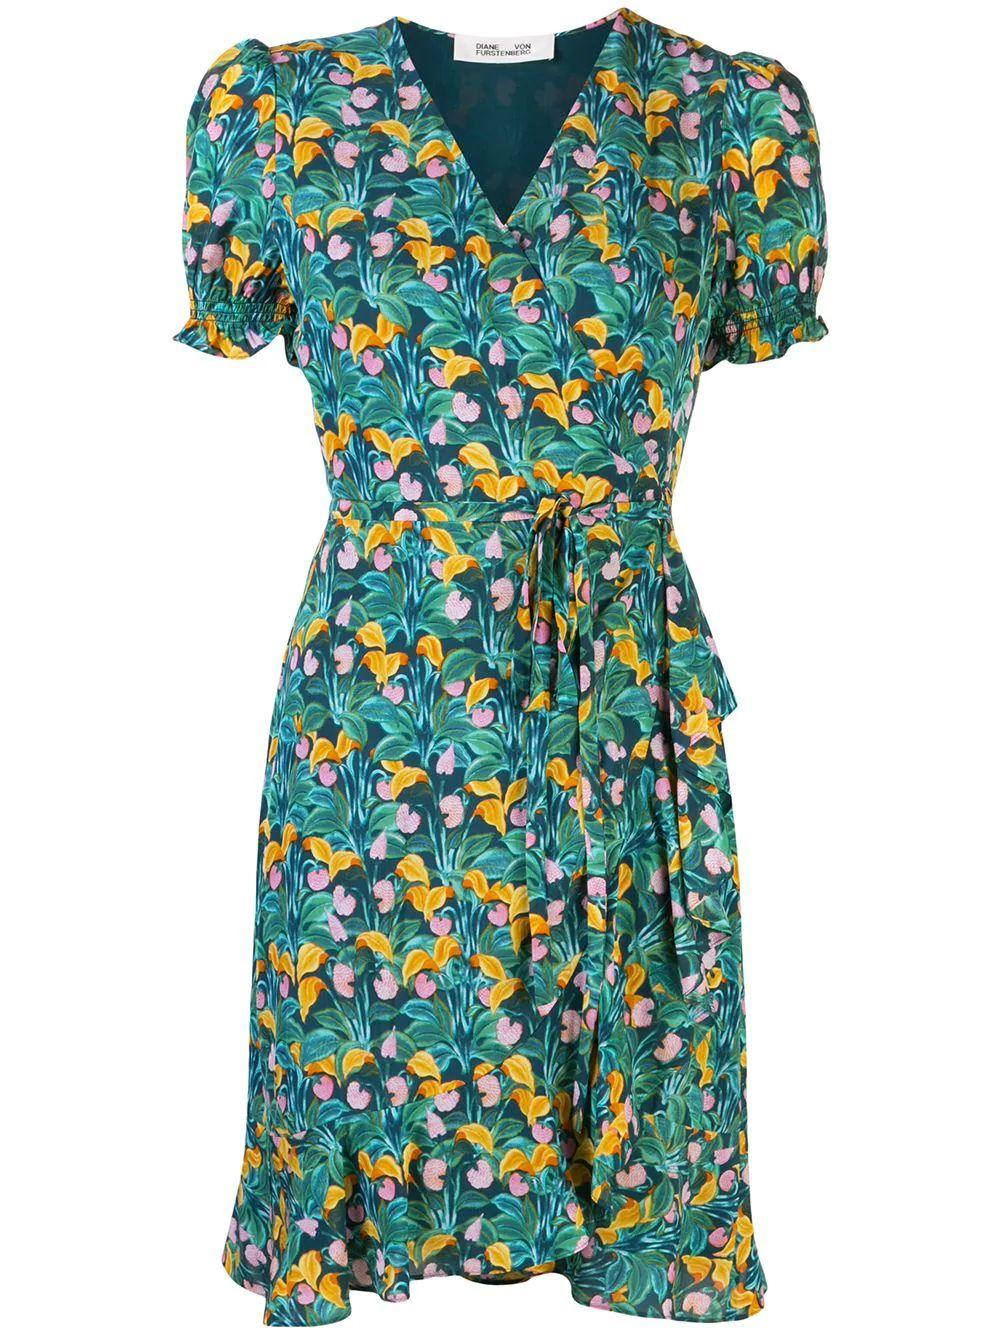 Emilia Short Sleeve Floral Dress